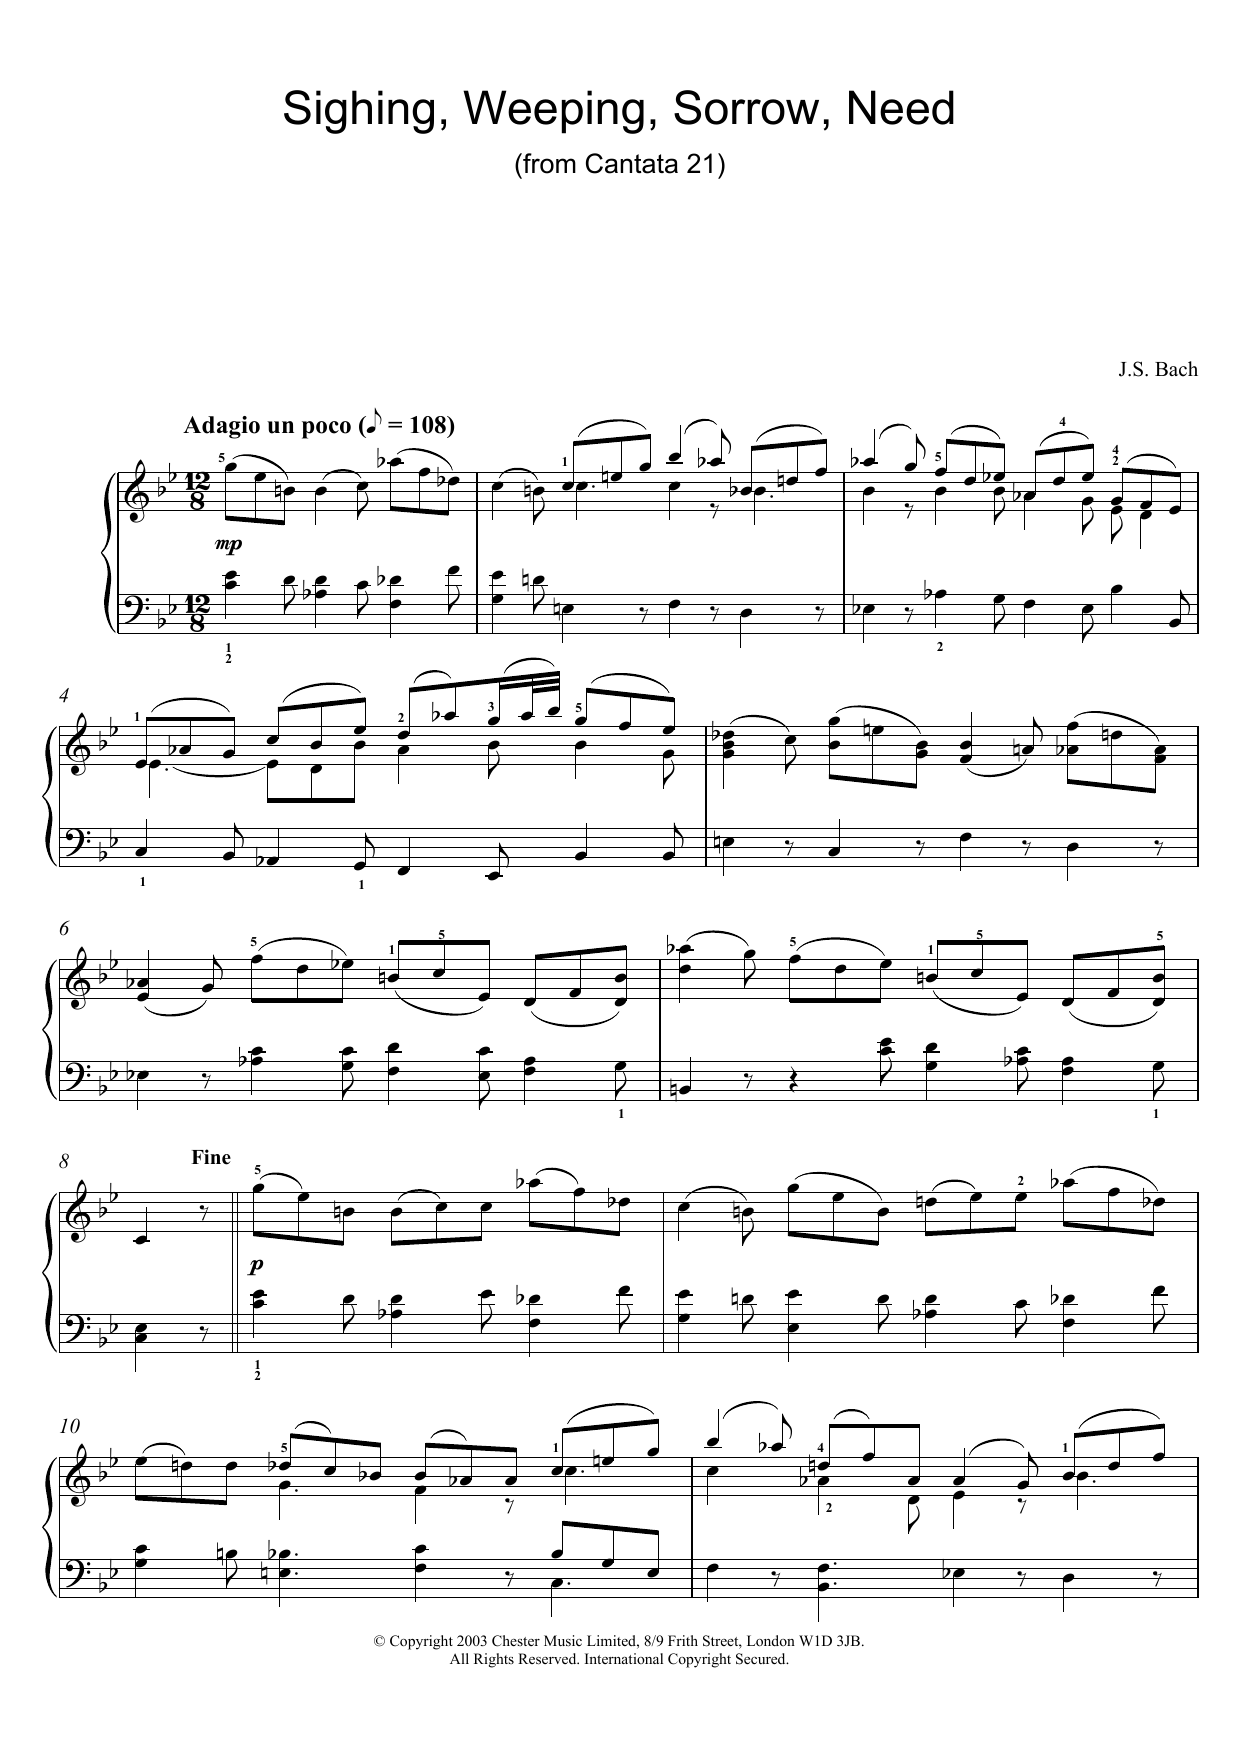 J.S. Bach Sighing, Weeping, Sorrow, Need (from Cantata 21) sheet music preview music notes and score for Piano including 2 page(s)